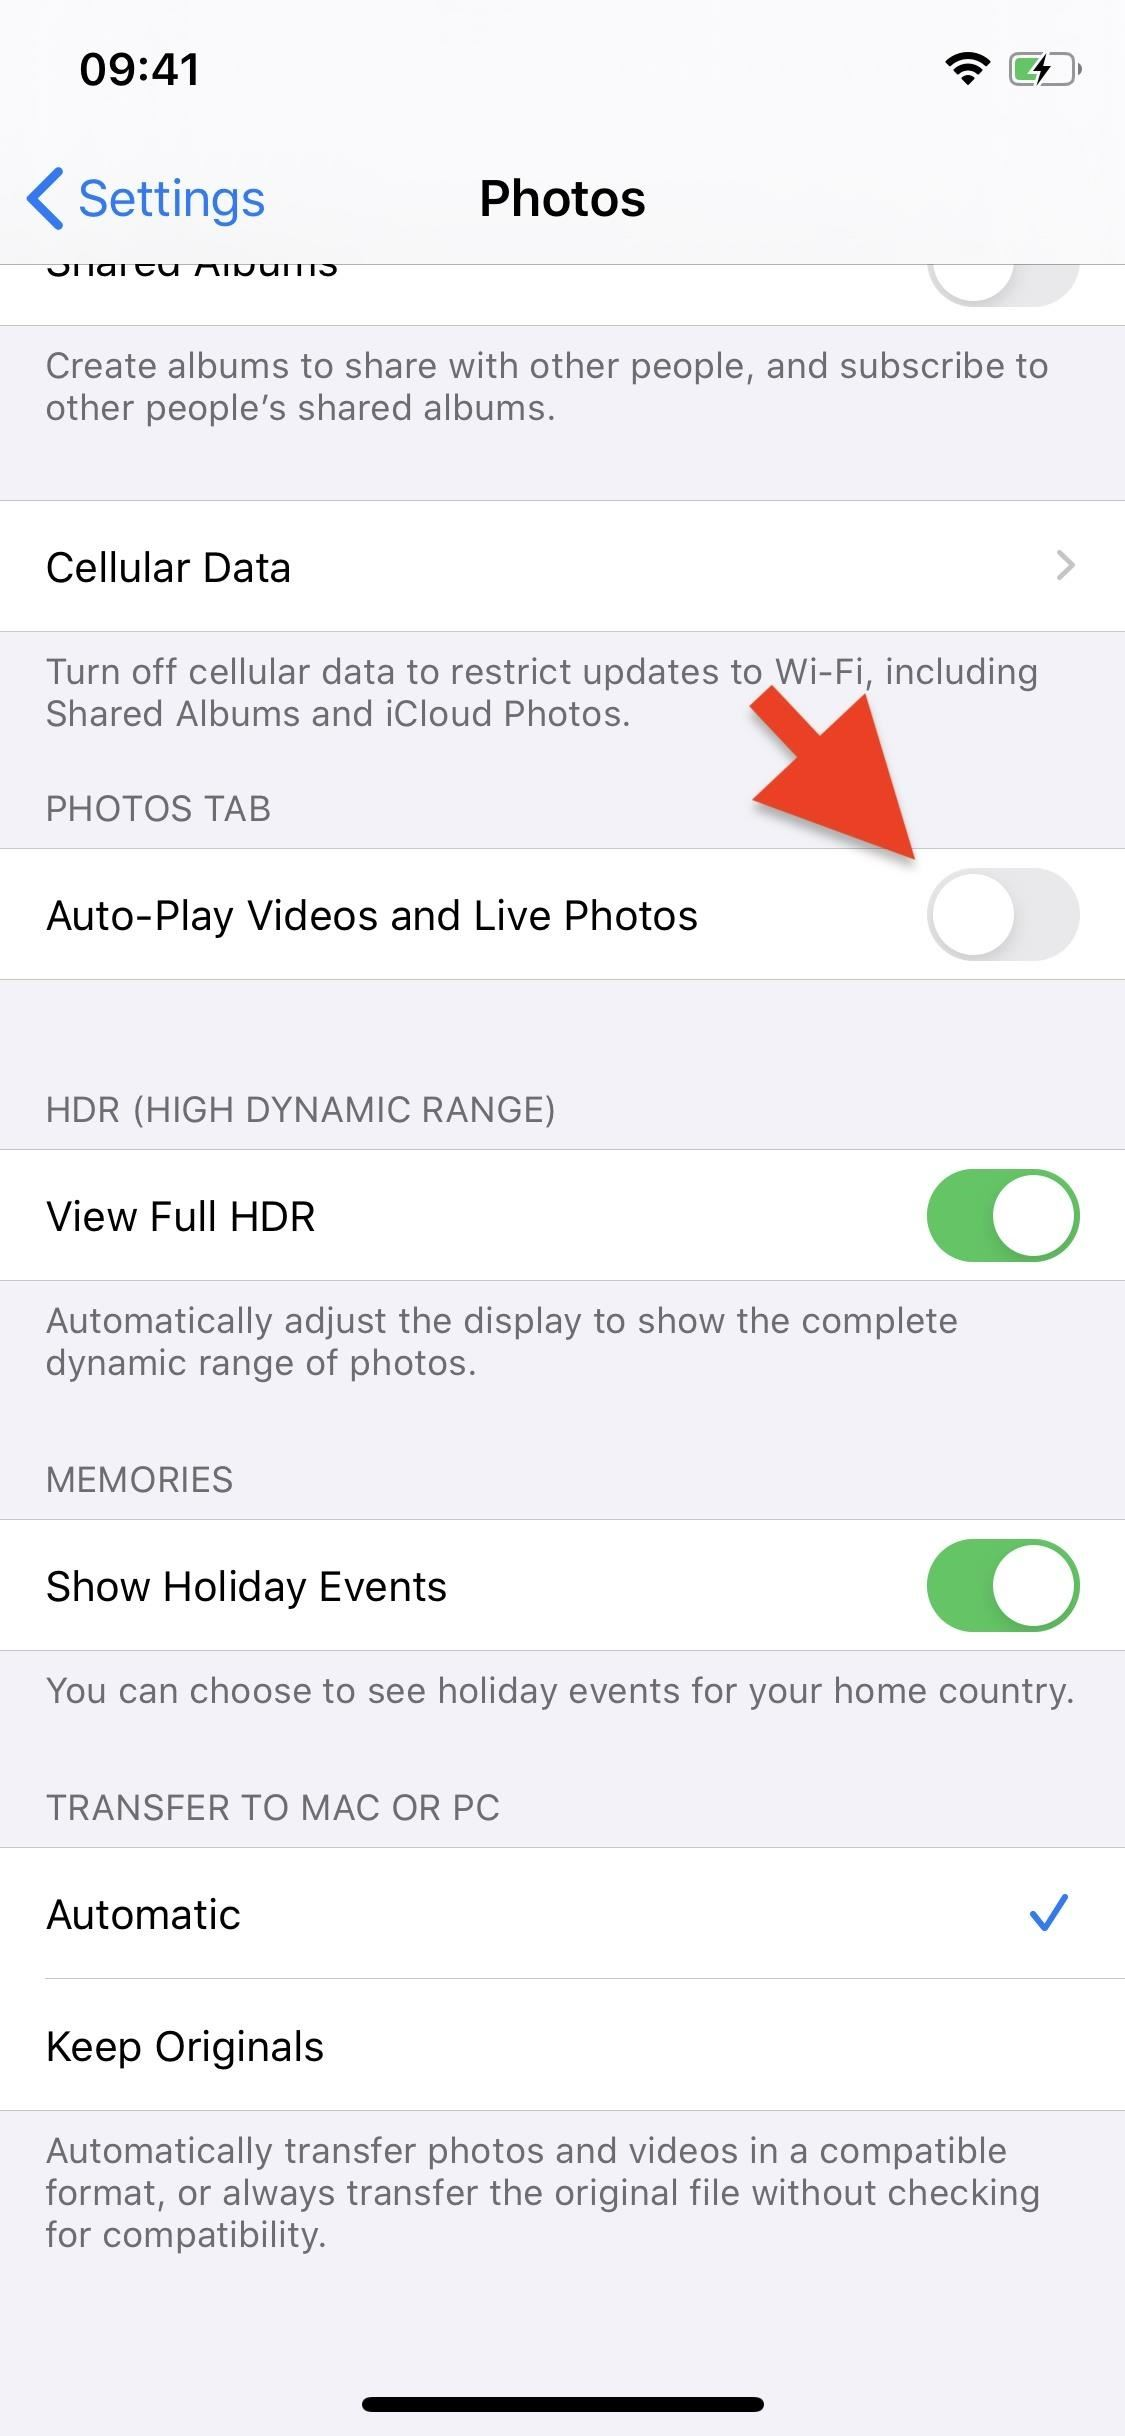 How to Stop Videos & Live Photos from Auto-Playing in the Photos App on iOS 13